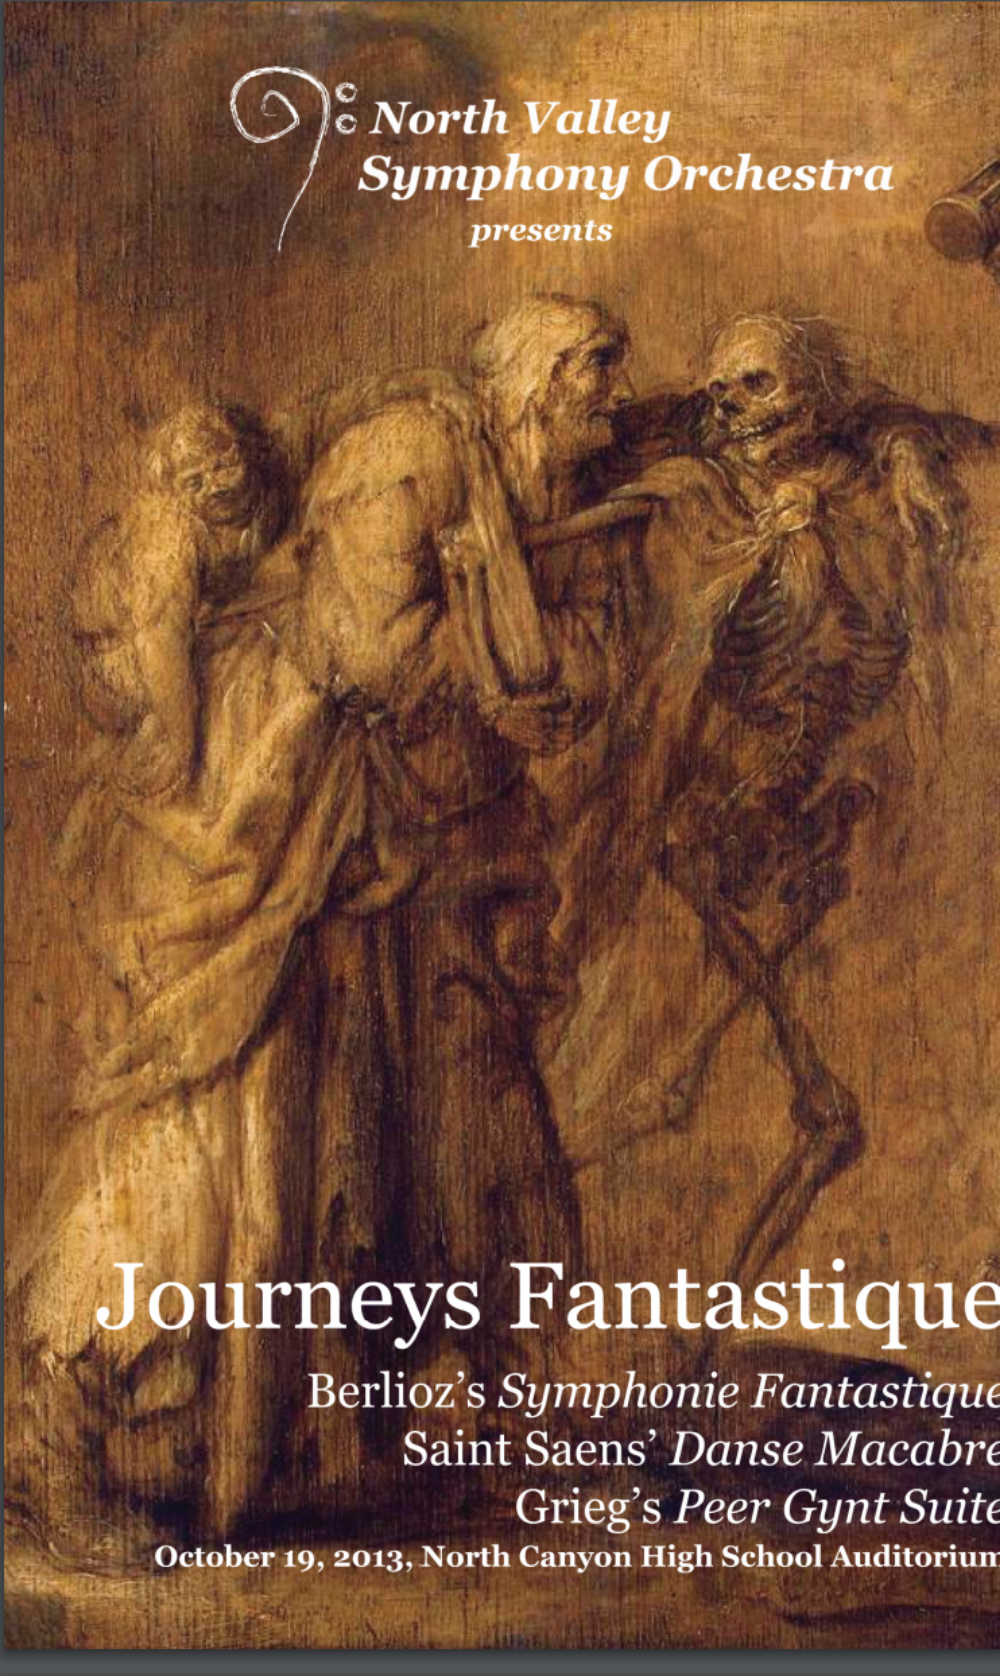 Journeys Fantastique - October 19, 2013